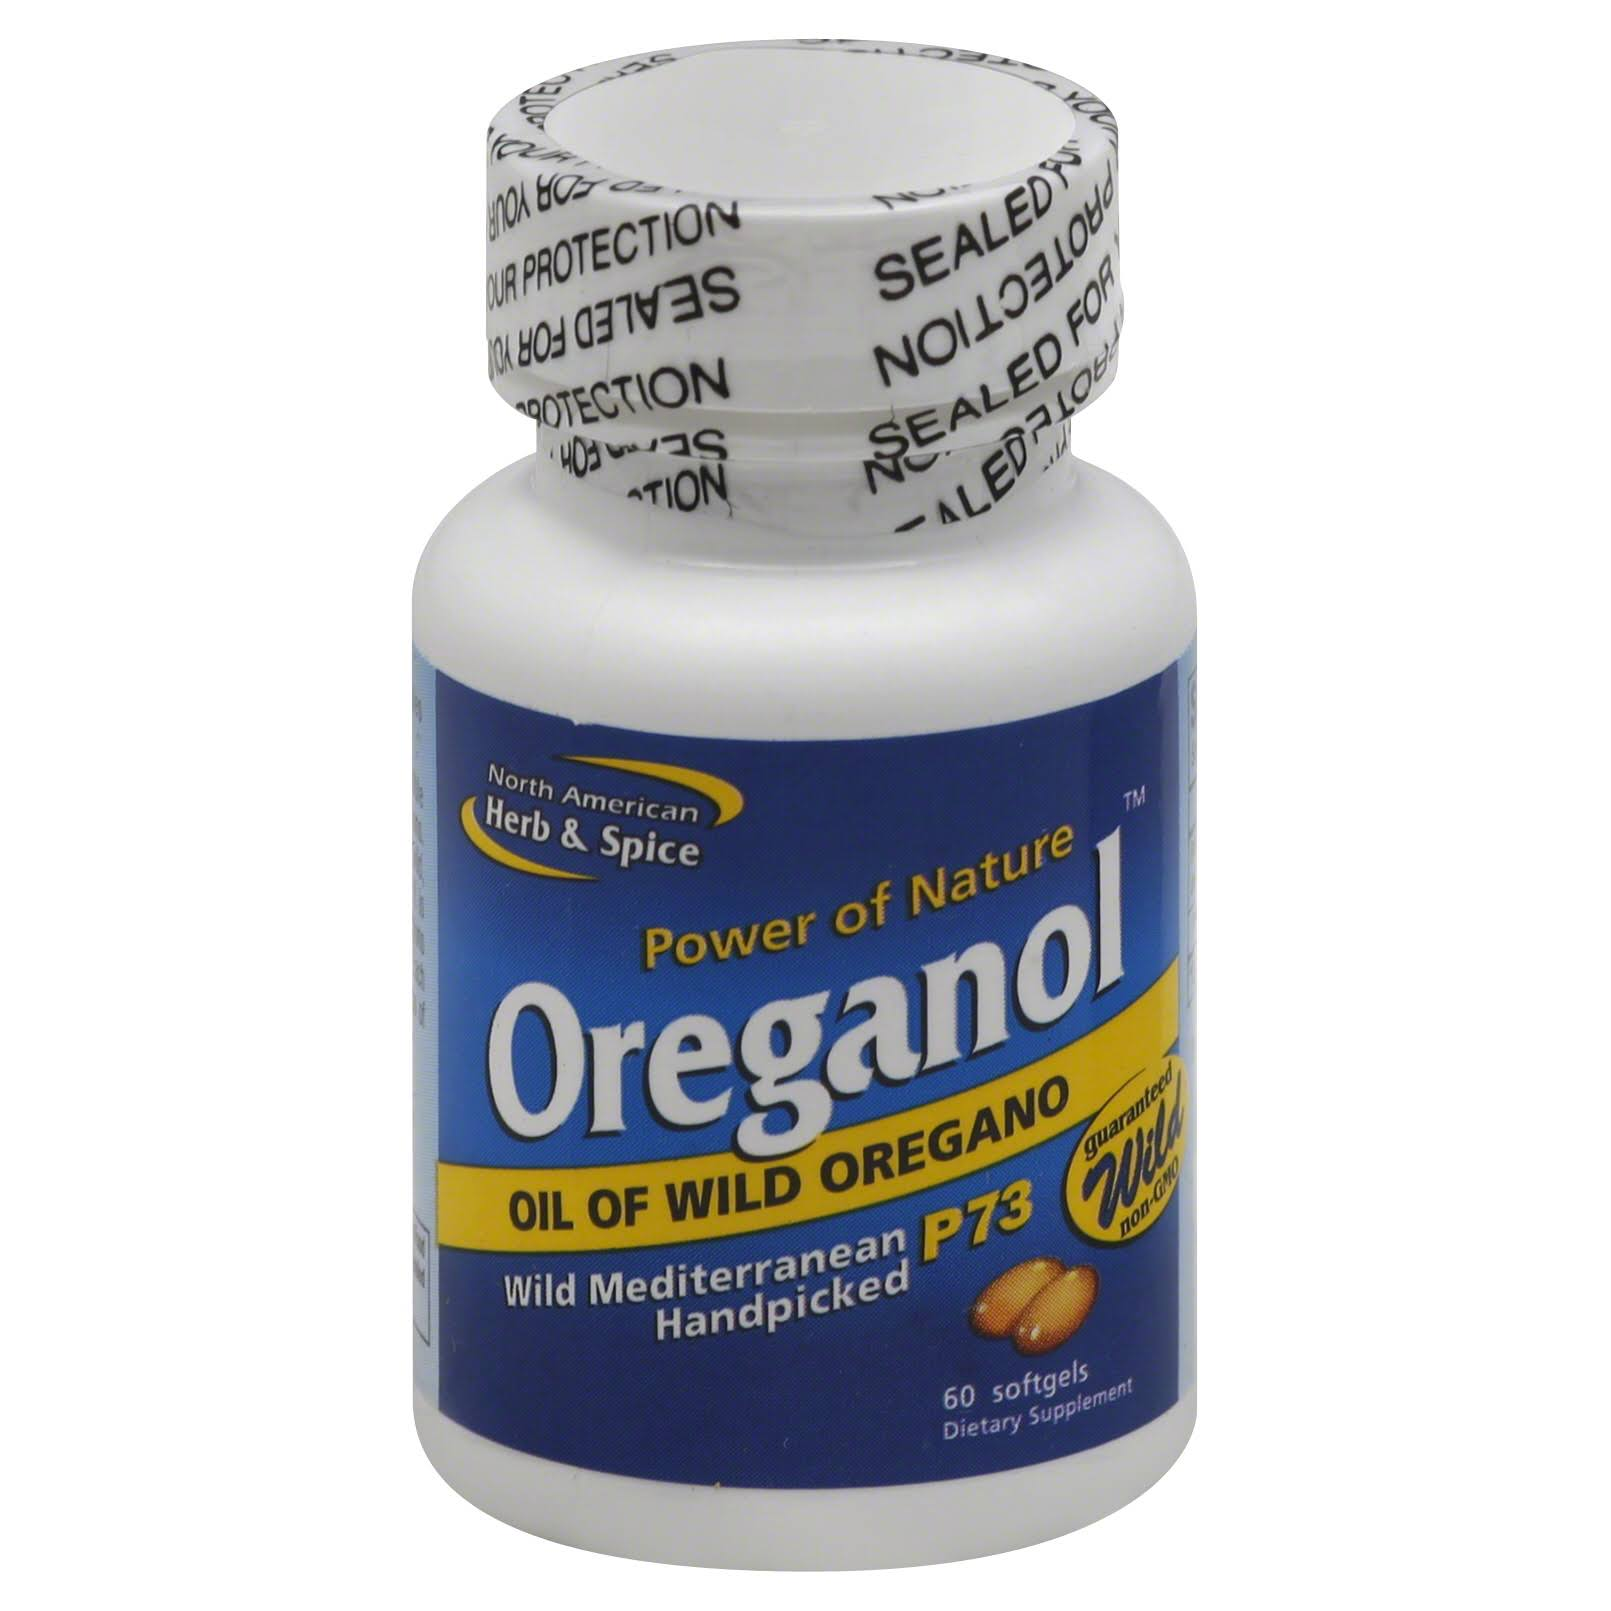 North American Herb And Spice Oreganol - 60 Softgels